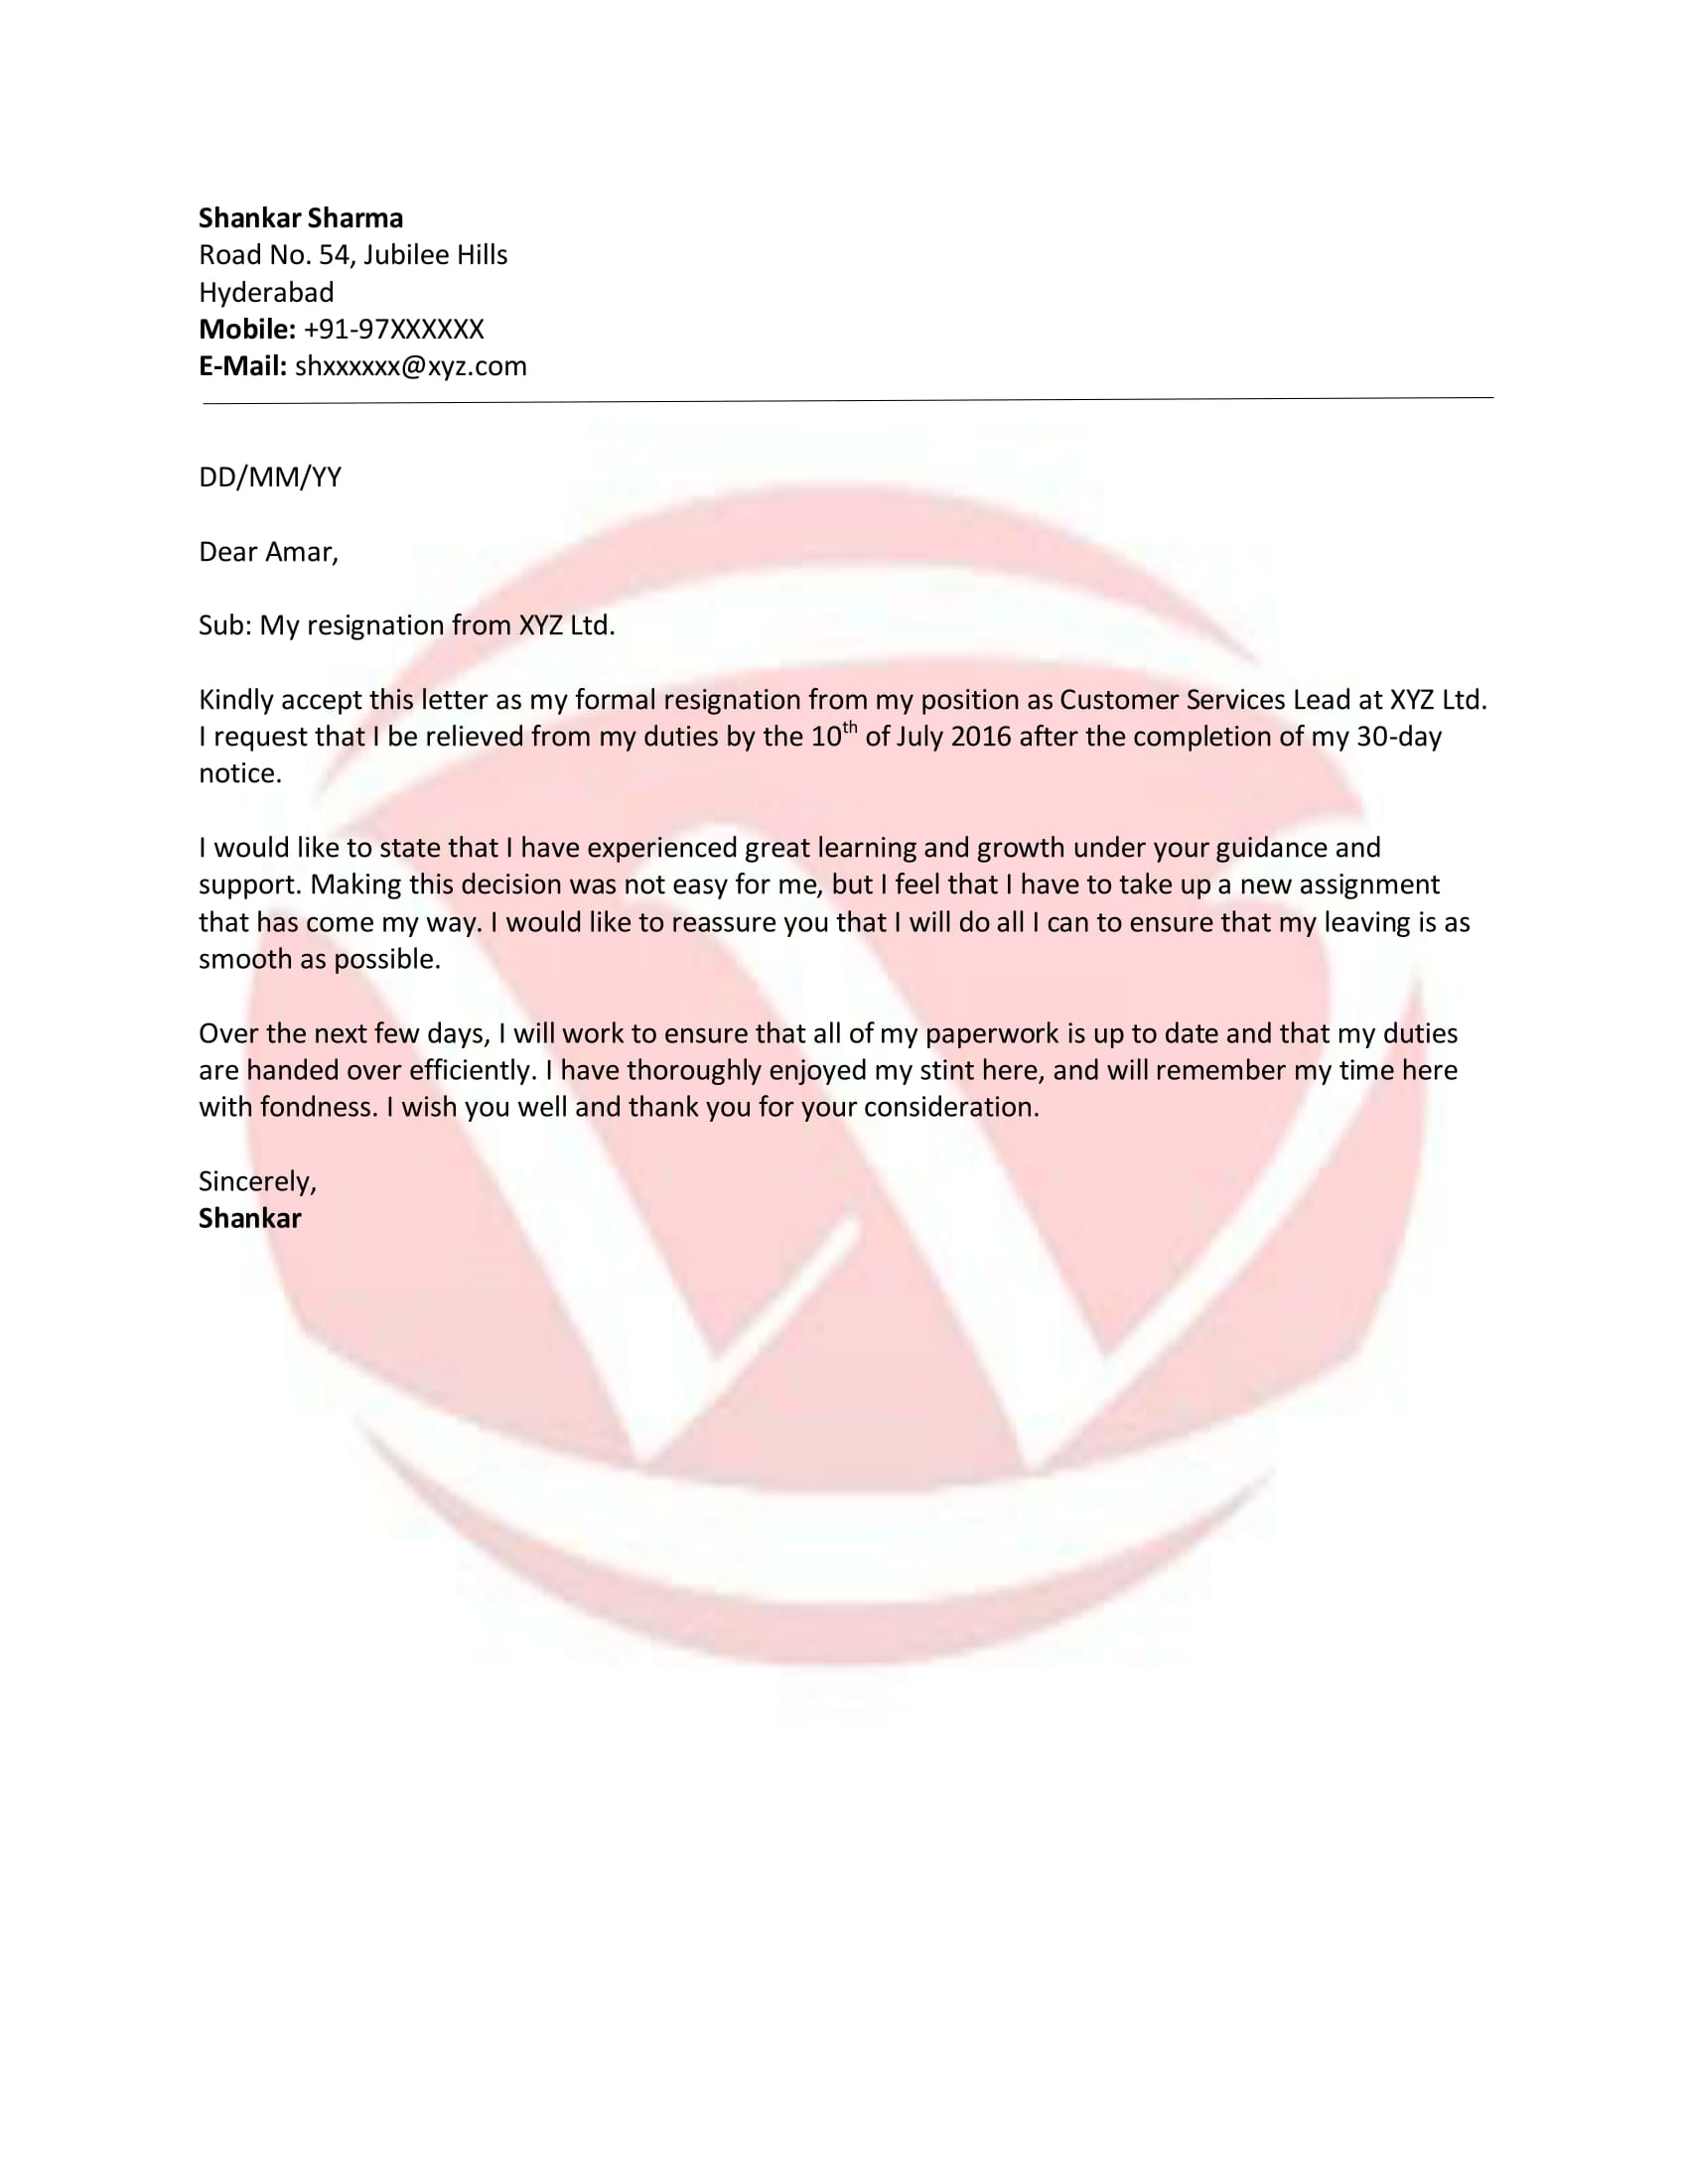 Resignation sample letter format download letter format templates resignation sample letter altavistaventures Gallery